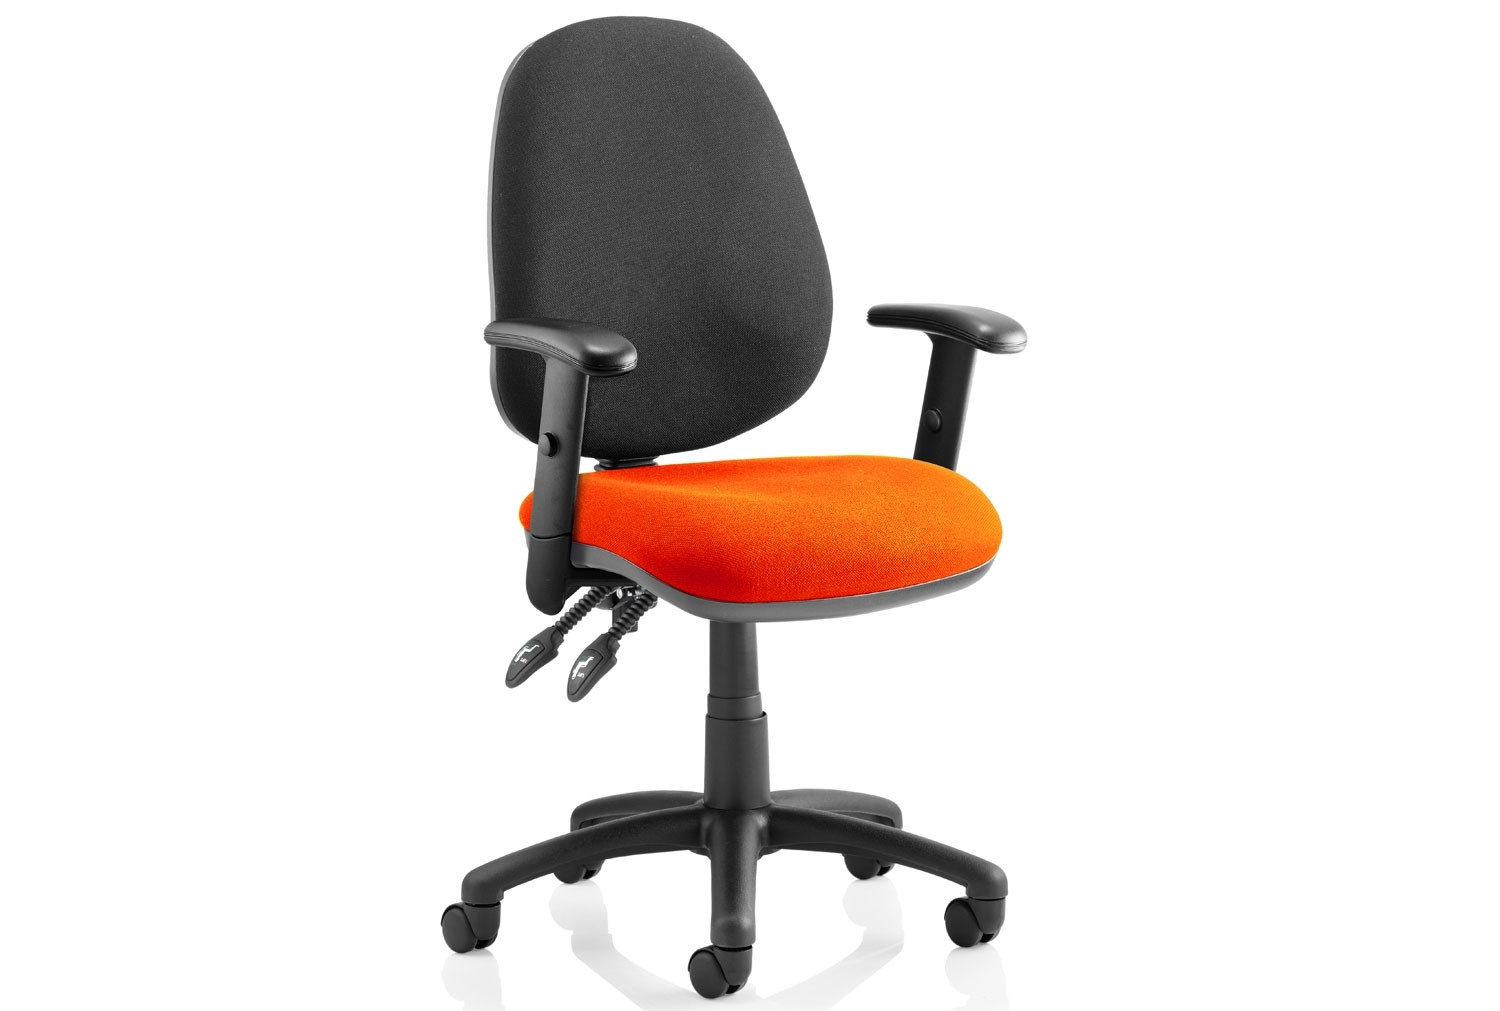 Solar Two Tone 2 Lever Fabric Chair (Adjustable Arms)